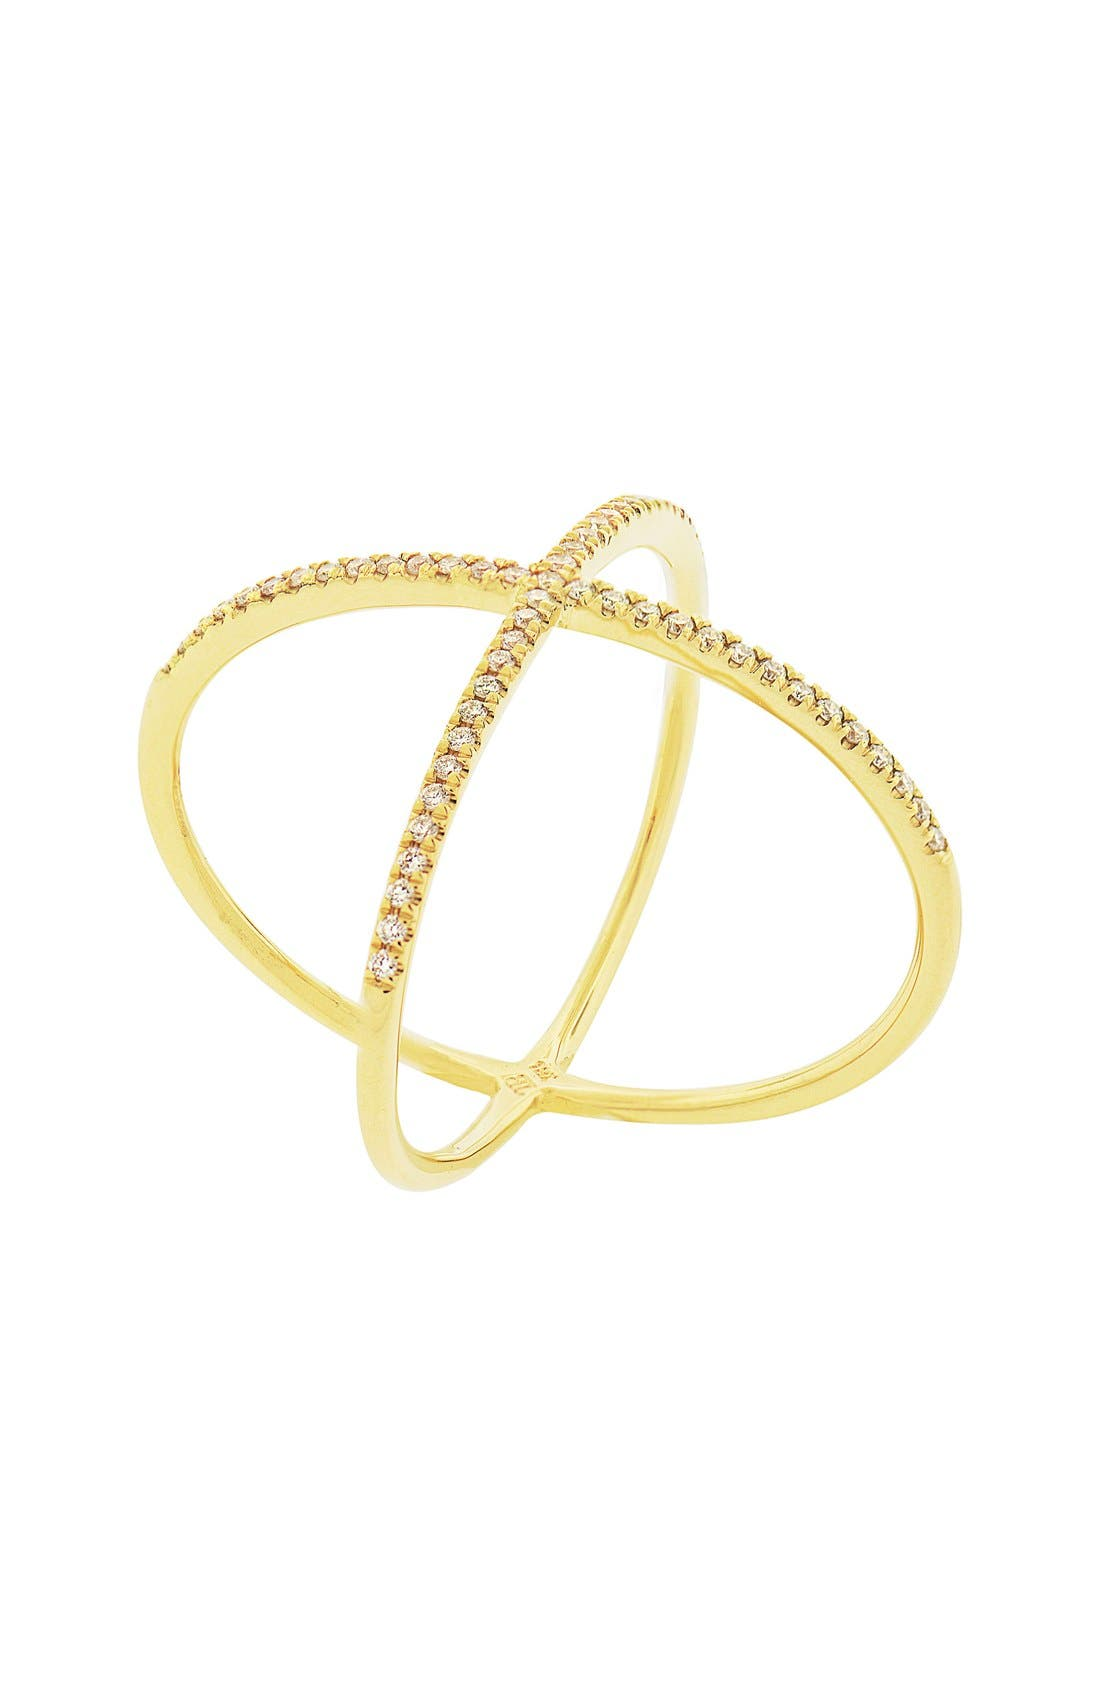 Main Image - Bony Levy Crossover Diamond Ring (Nordstrom Exclusive)